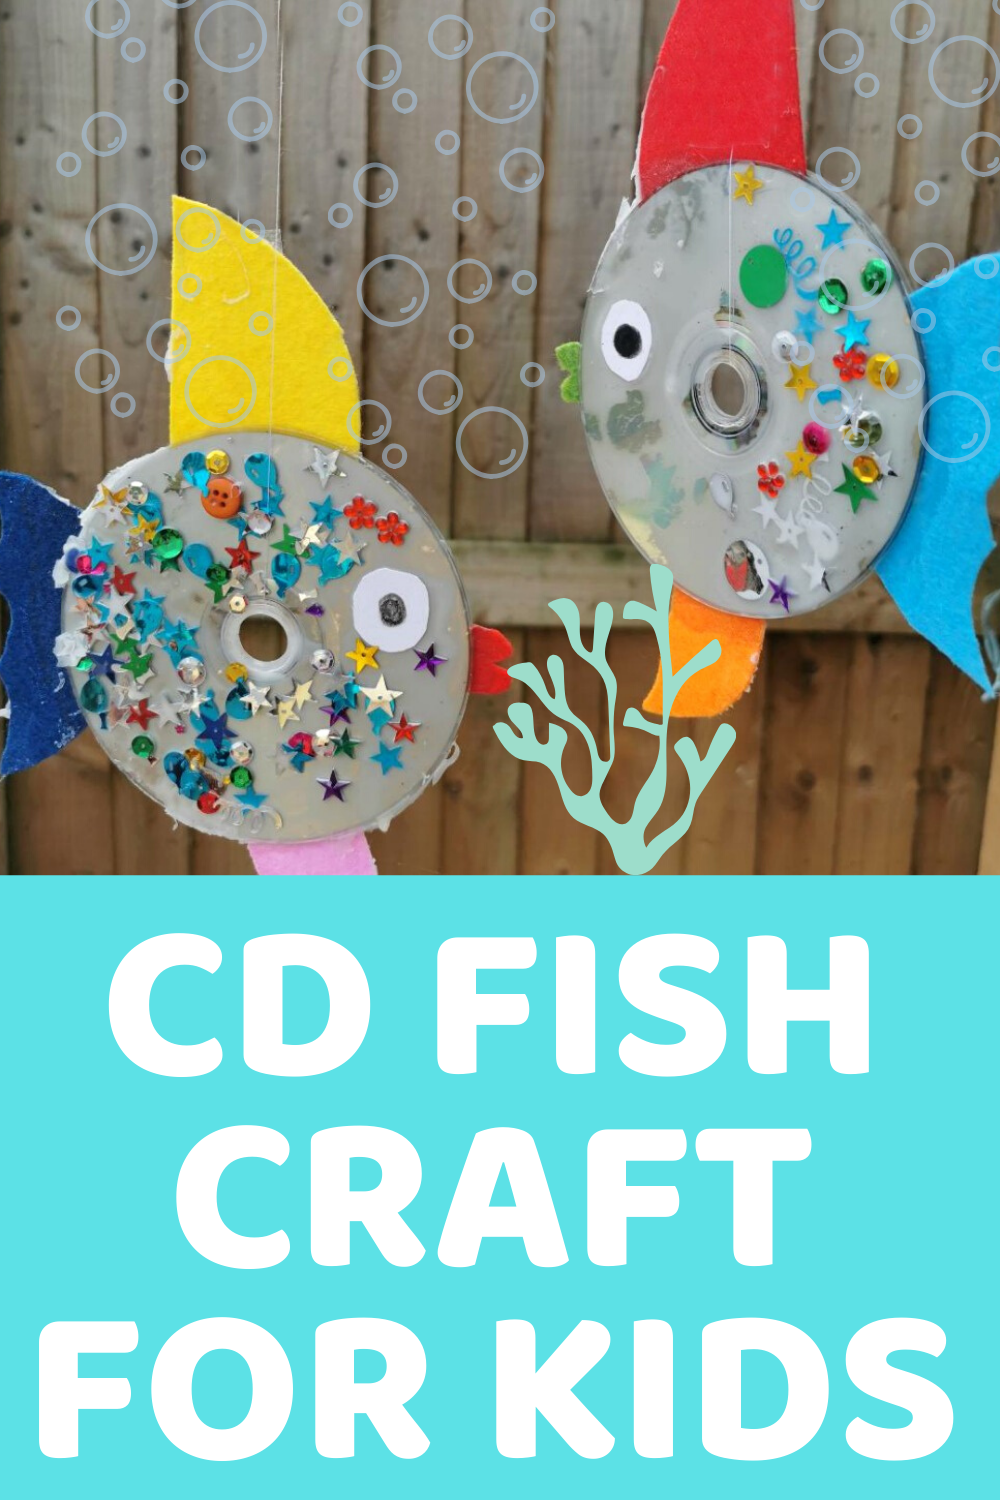 Under The Sea Themed Crafts For Kids - CD Fish Craft